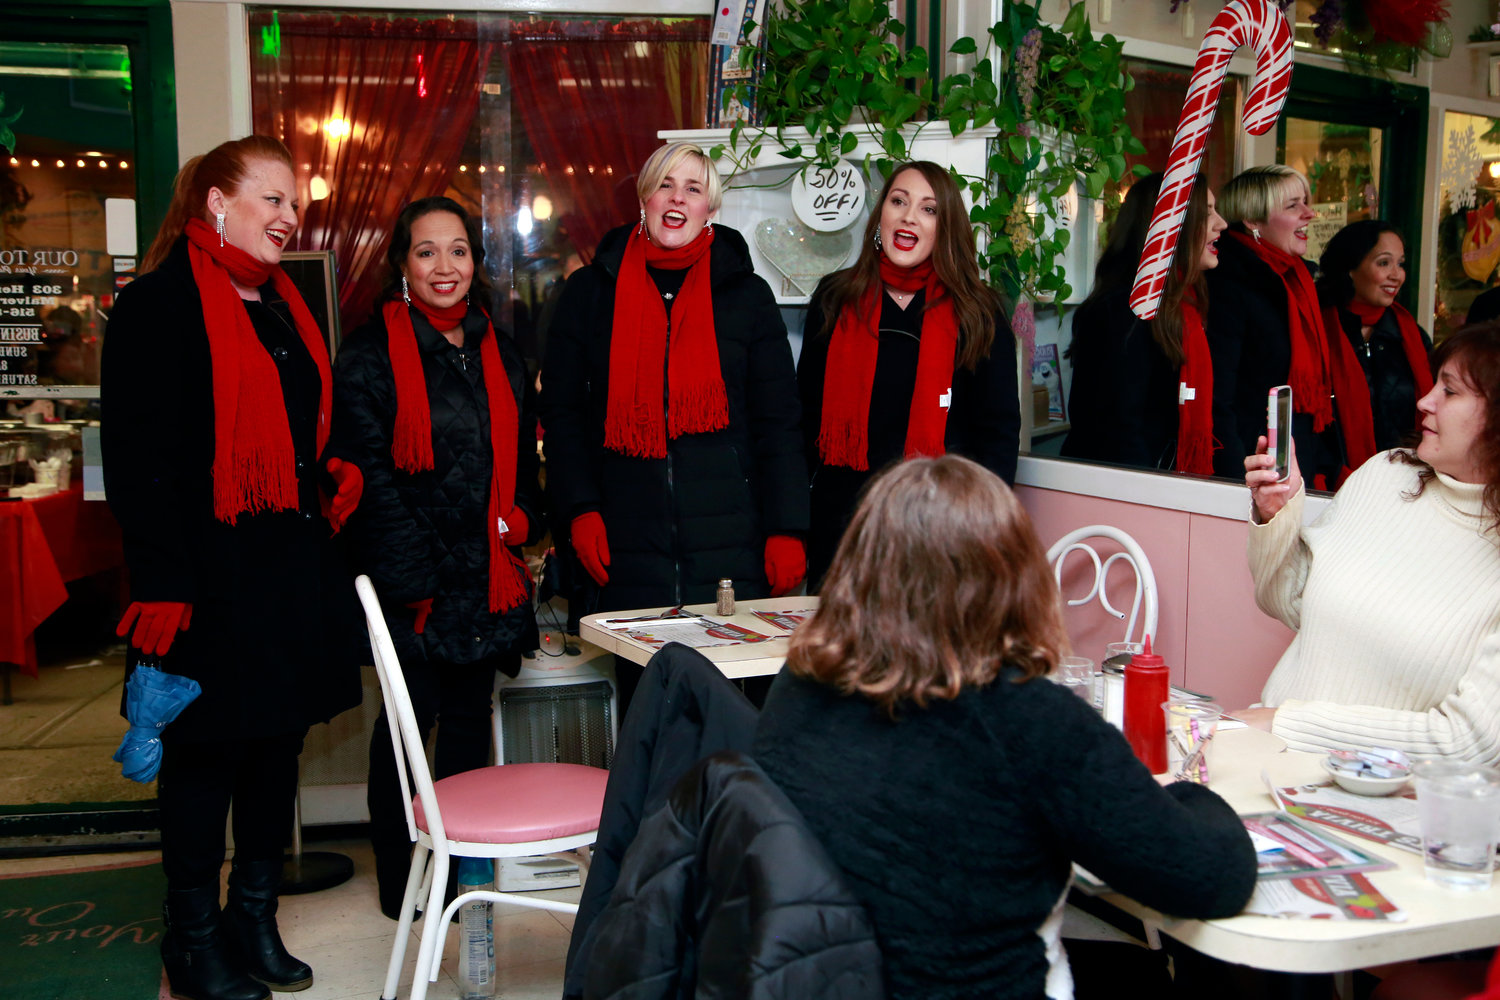 No Quarter Quartet treated patrons of Our Town to some Christmas harmonies.